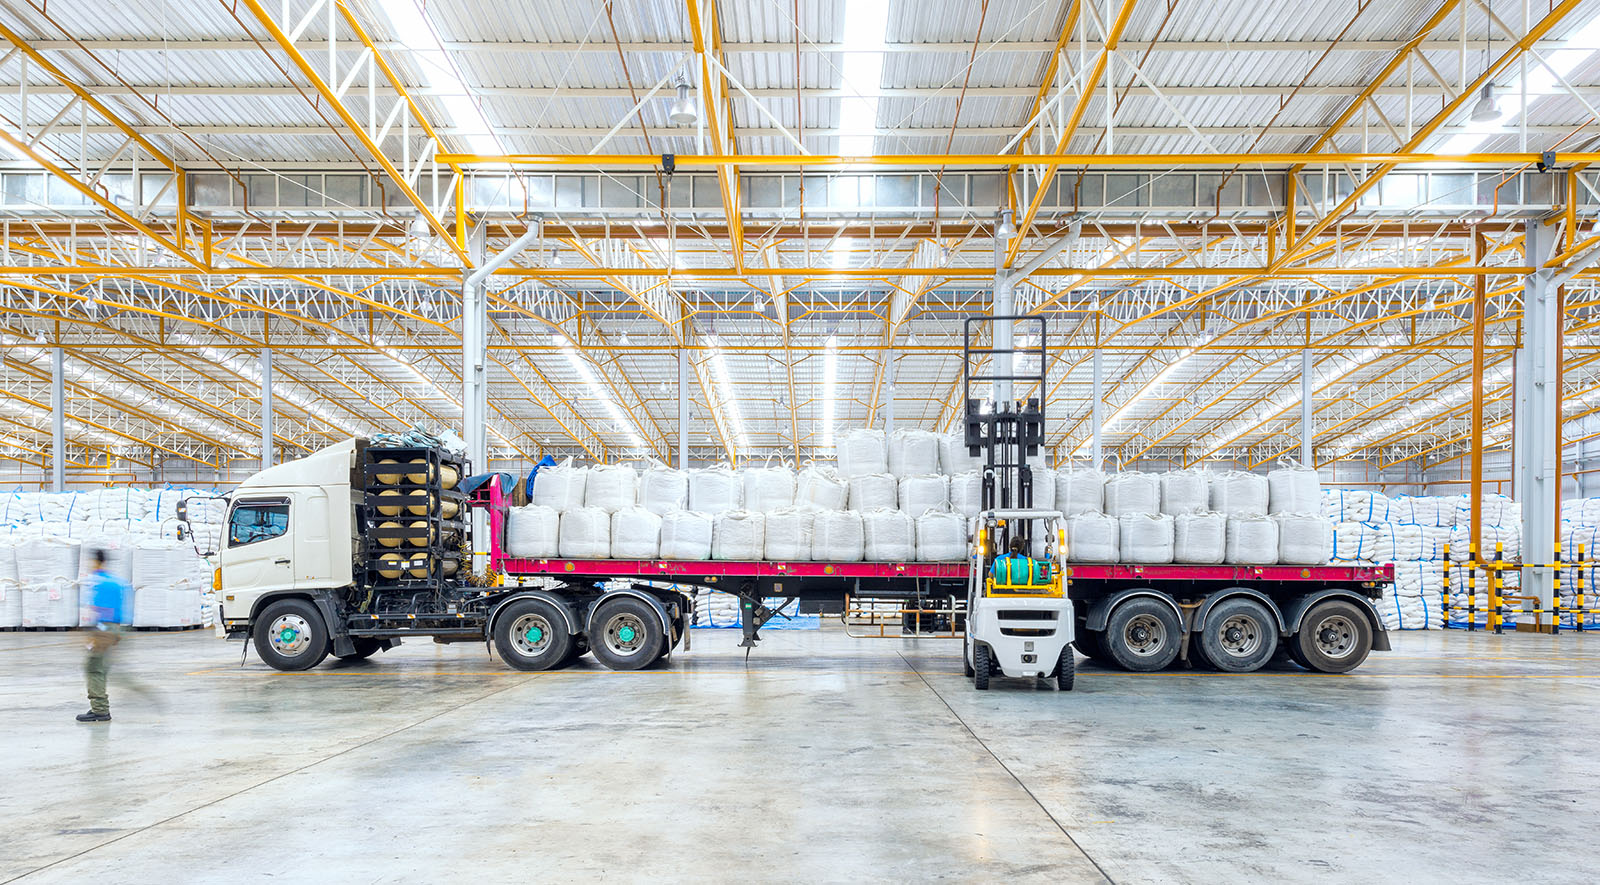 Huge distribution shipping warehouse for Global business shipping